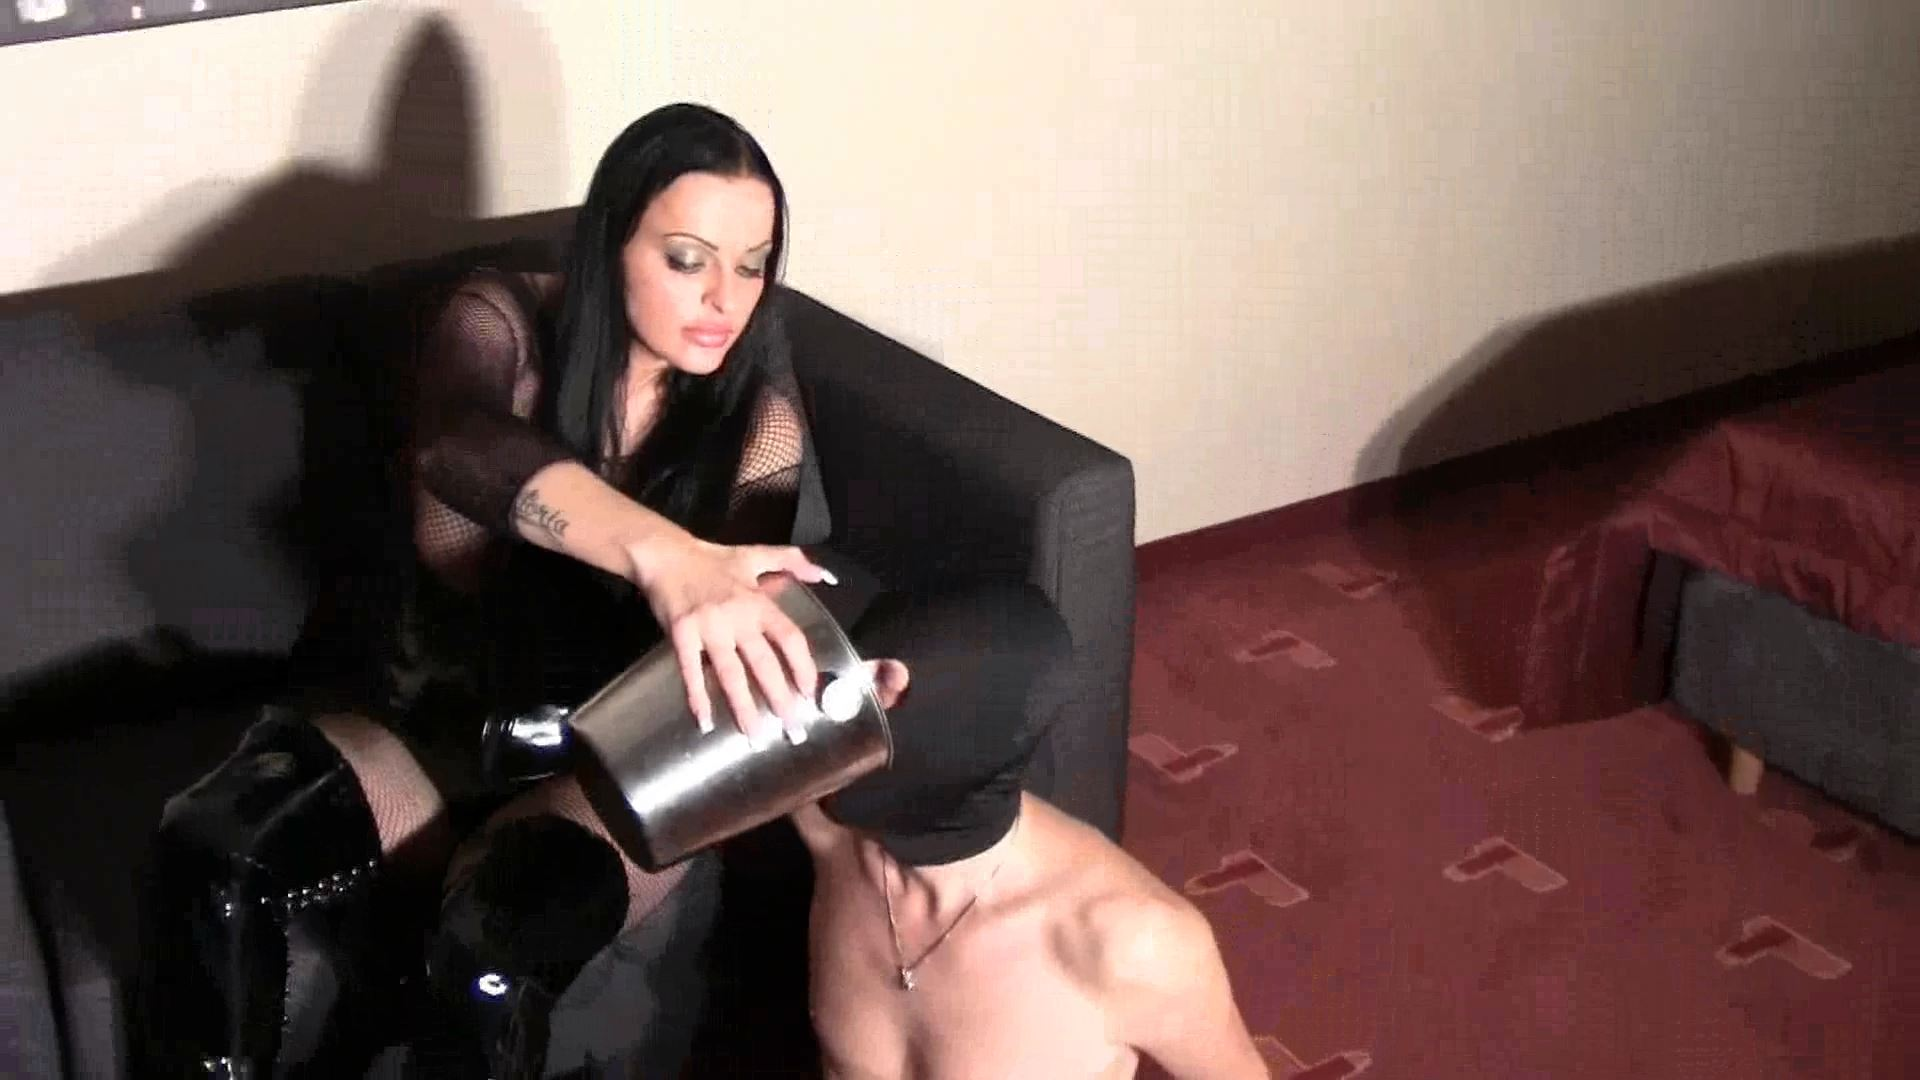 Mistress Lady Latoria In Scene: Piss & Stinky socks - CLIPS4SALE / LADY LATORIAS WORLD / HERRIN-LATORIA - FULL HD/1080p/MP4